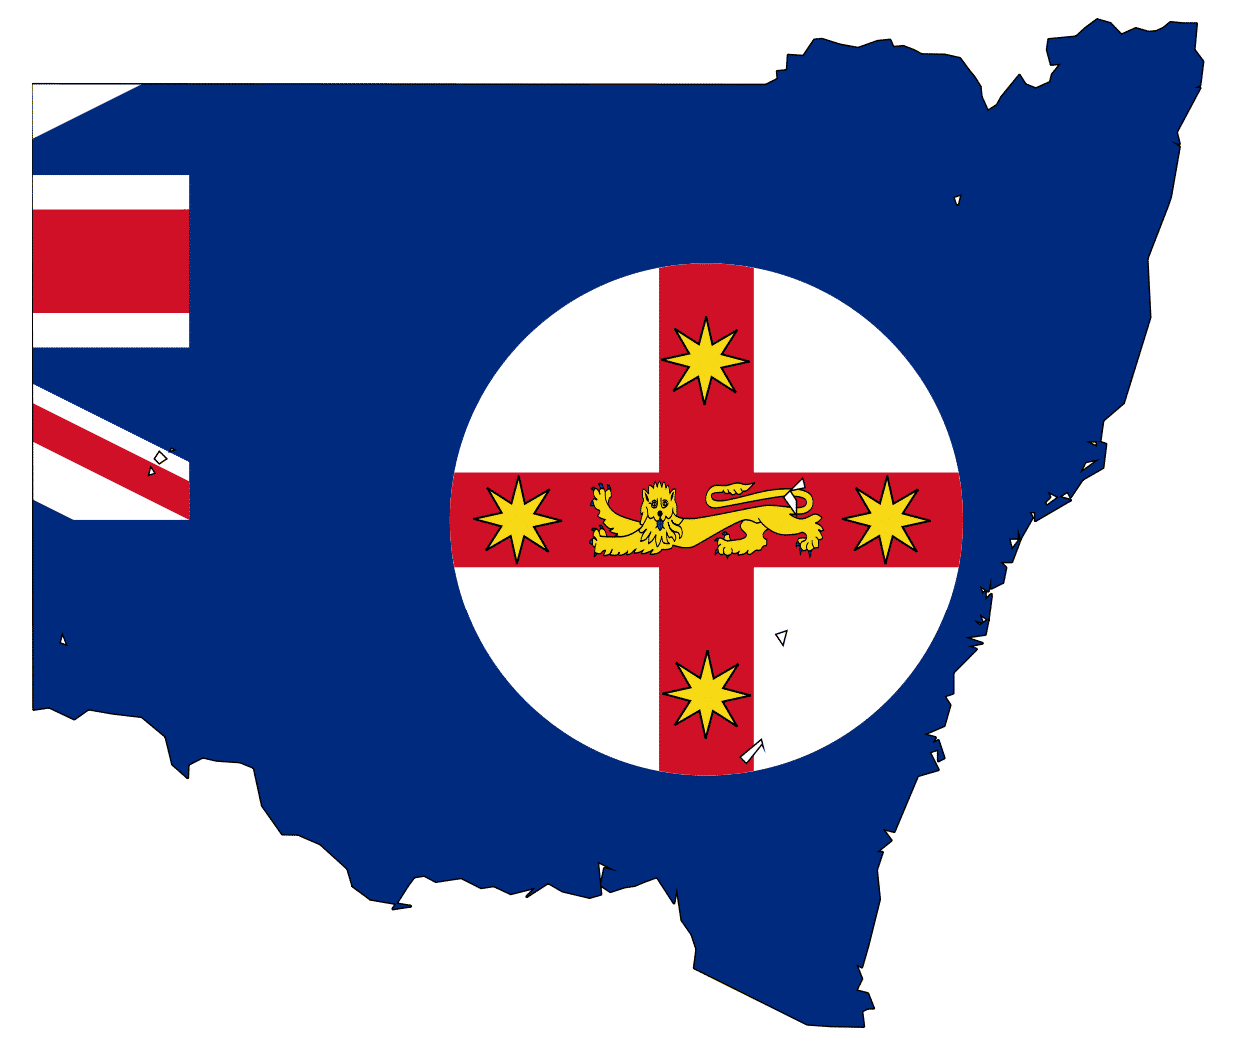 the classified perky New South Wales